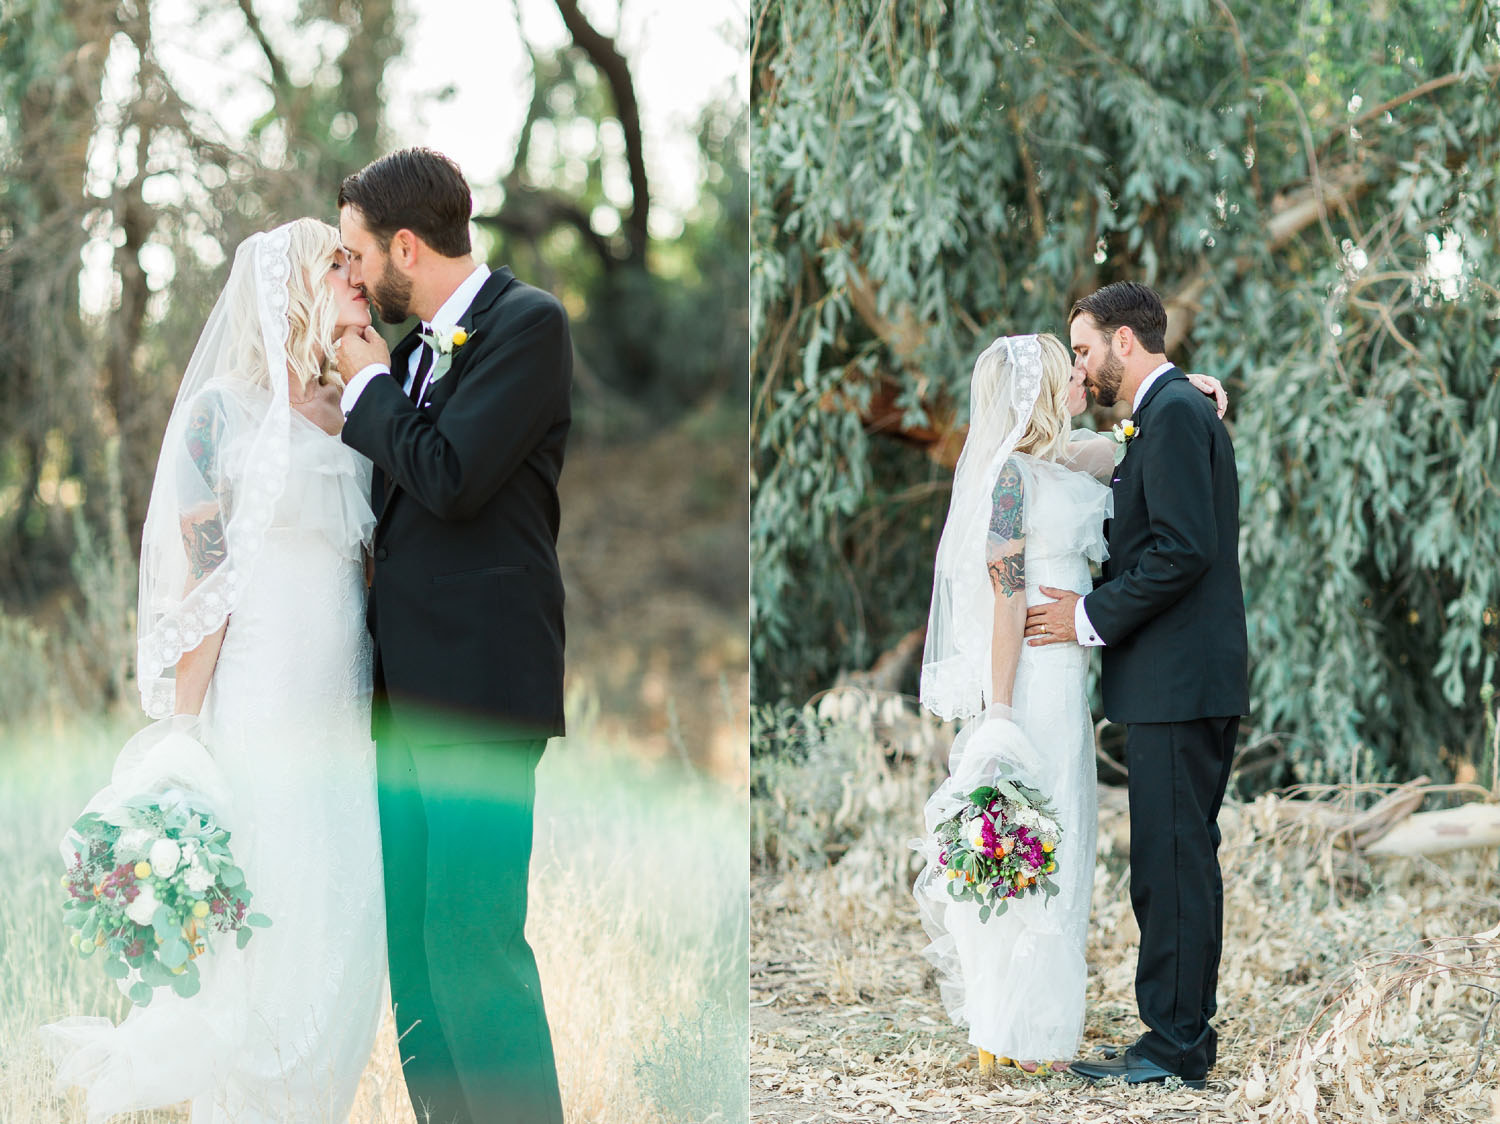 The Photege - Elegant Boho Wedding on Suburu Farm in Bakersfield California- Cassie and Darin Buoni-3008